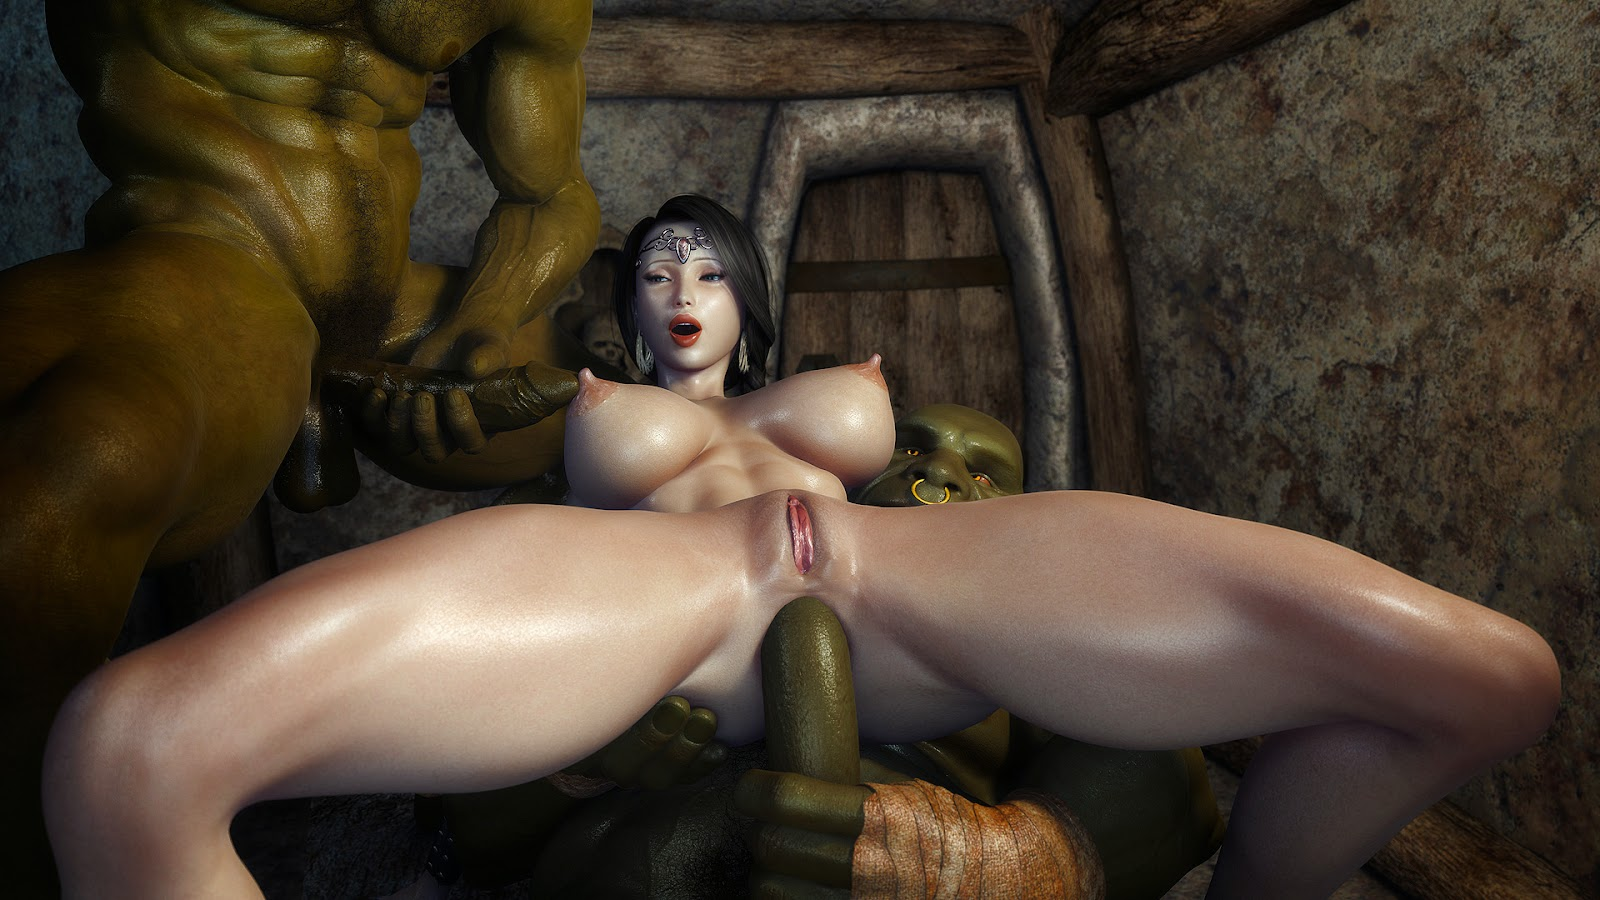 Ogre porno nude galleries